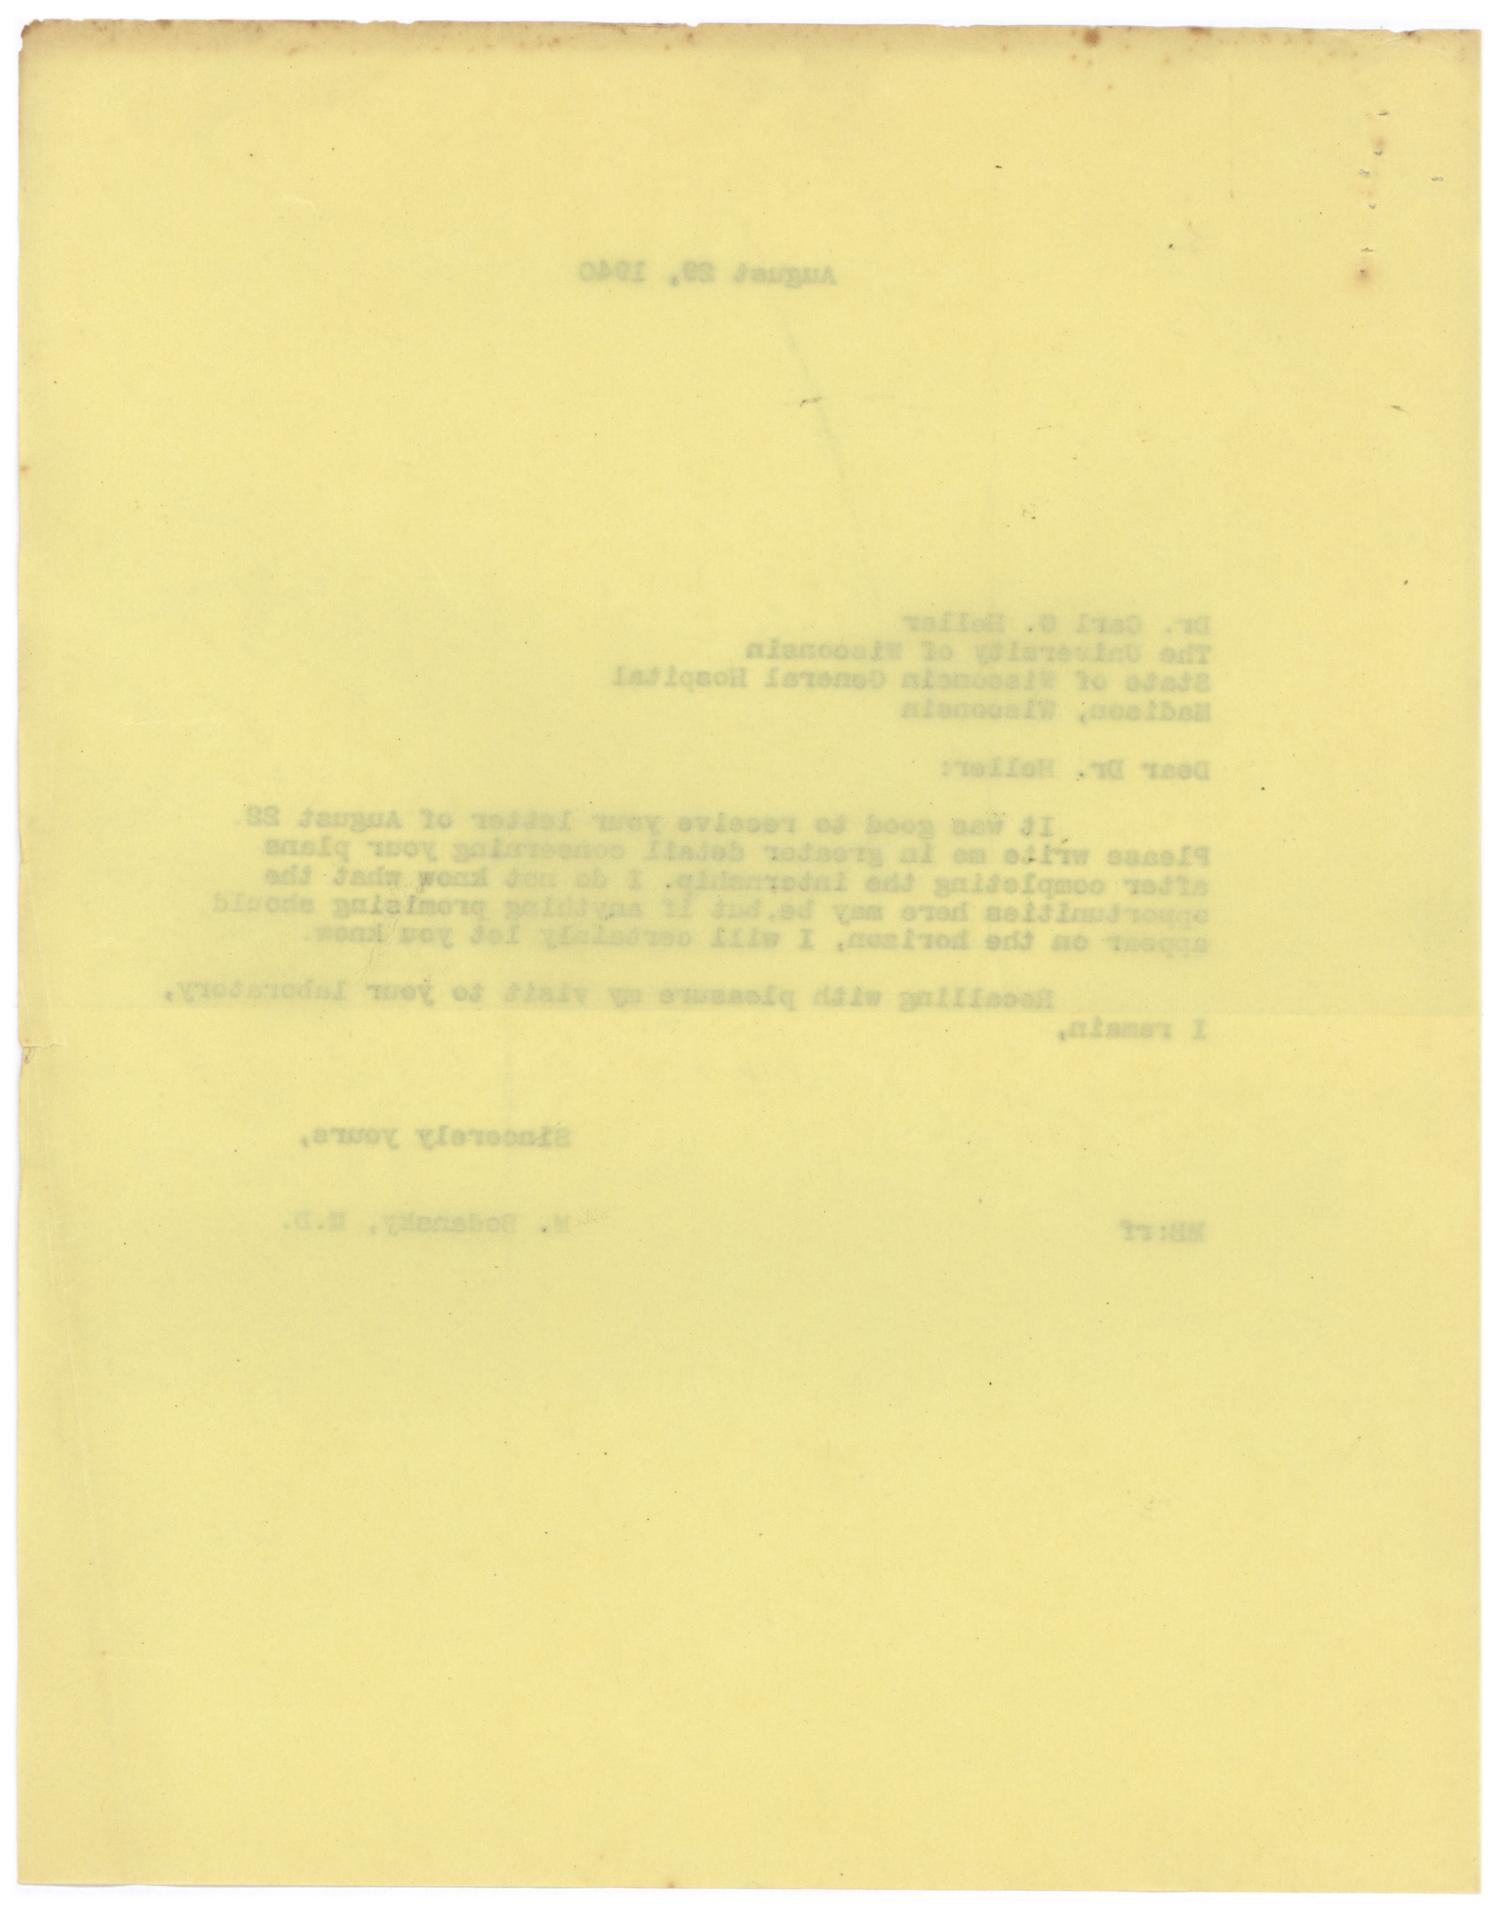 [Correspondence between Meyer Bodansky and Carl G. Heller - August 1940]                                                                                                      [Sequence #]: 2 of 4